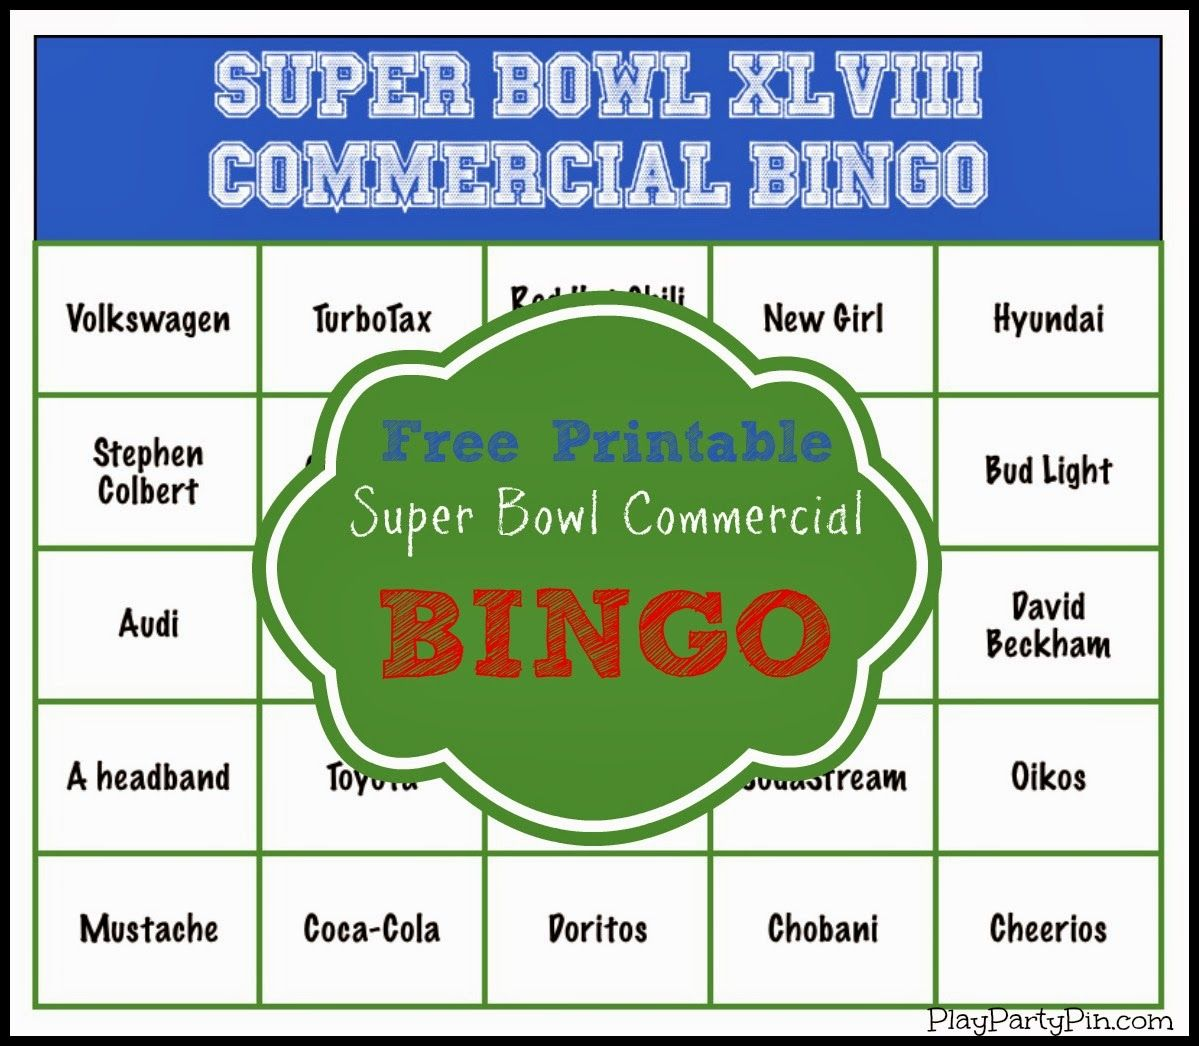 image about Free Printable Football Bingo Cards identify Cost-free printable Tremendous Bowl Business Bingo Playing cards that would